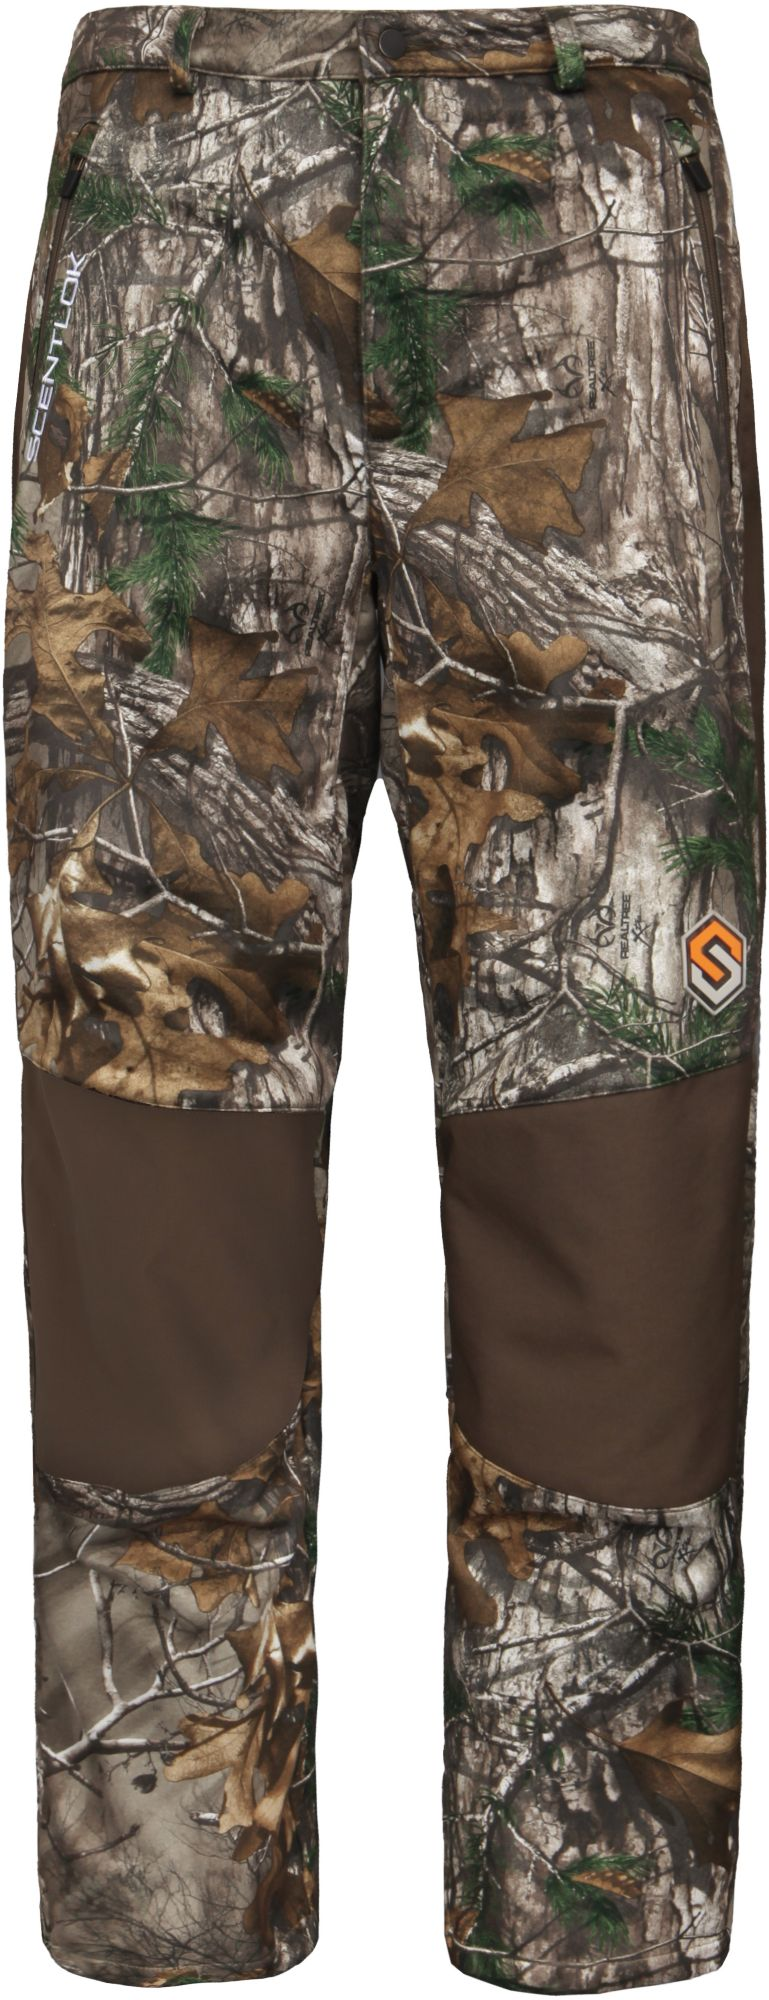 ScentLok Men's Helix Hunting Pants, Size: Large, Brown thumbnail